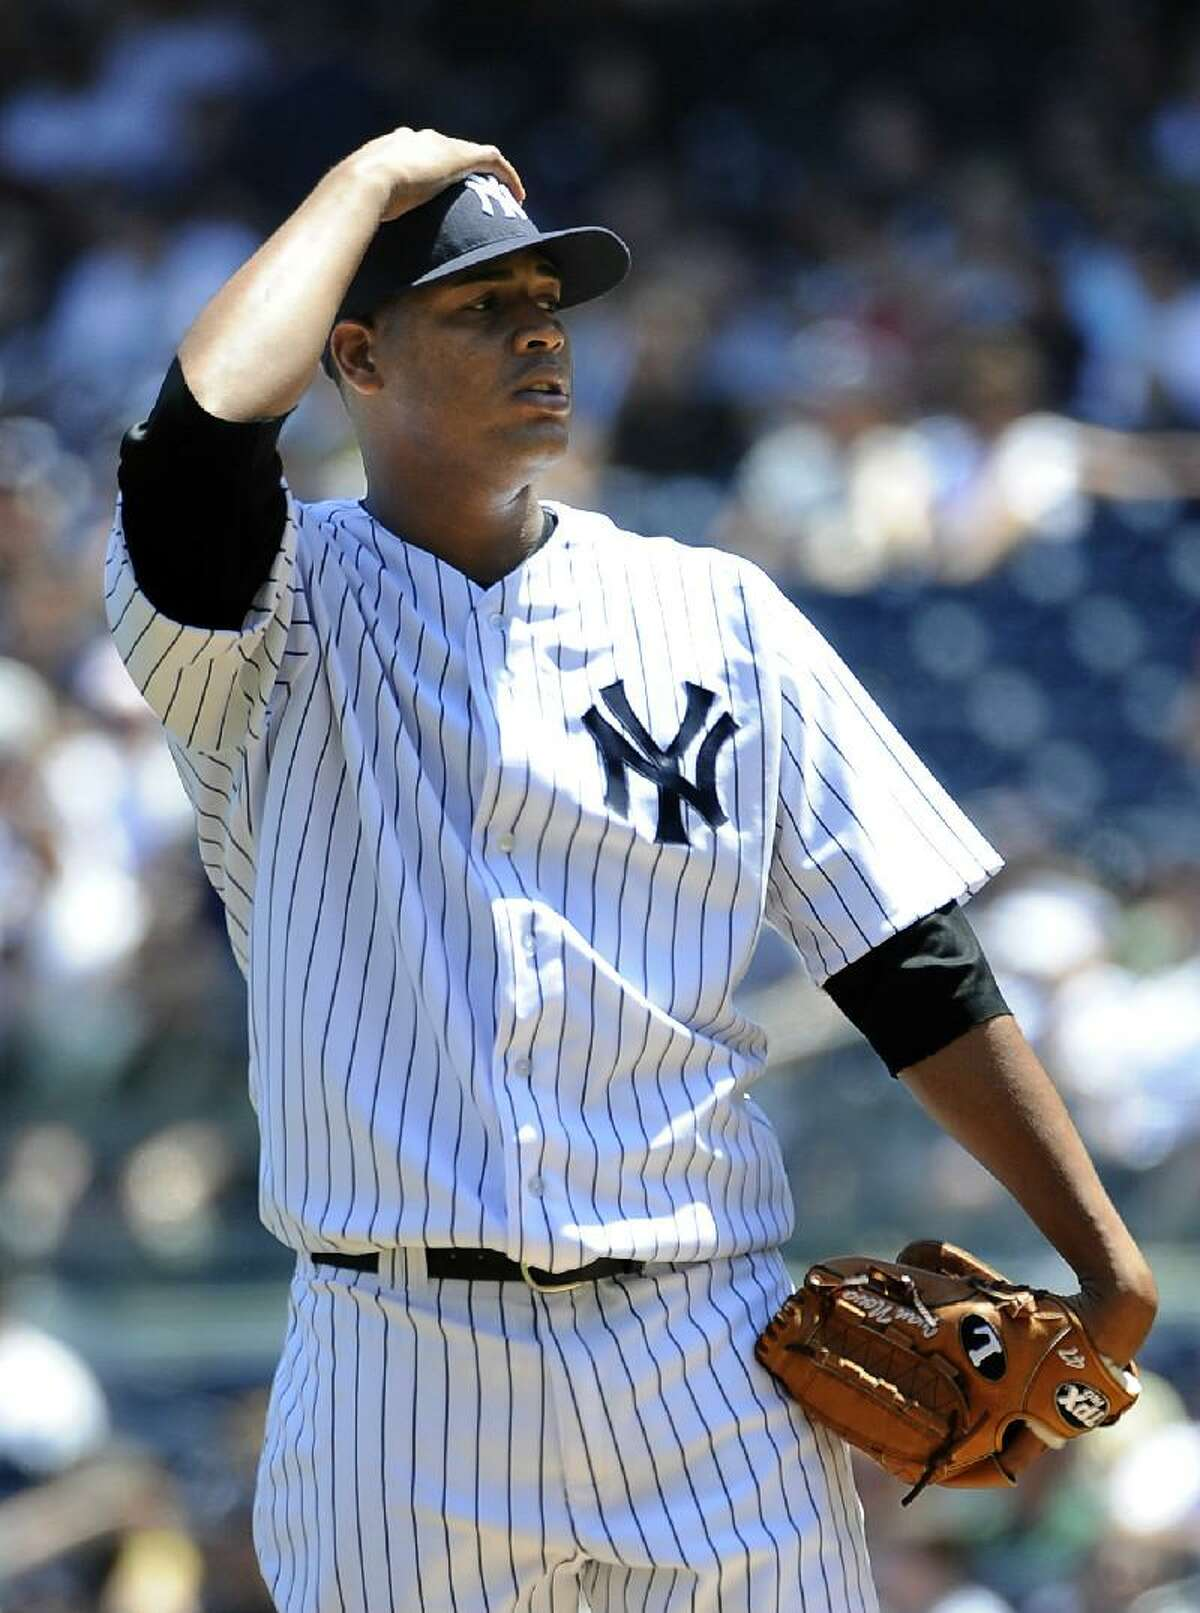 ASSOCIATED PRESS New York Yankees starting pitcher Ivan Nova reacts after he walks Cincinnati Reds' Joey Votto in the first inning of Saturday's game at Yankee Stadium in New York. The Reds won 6-5.